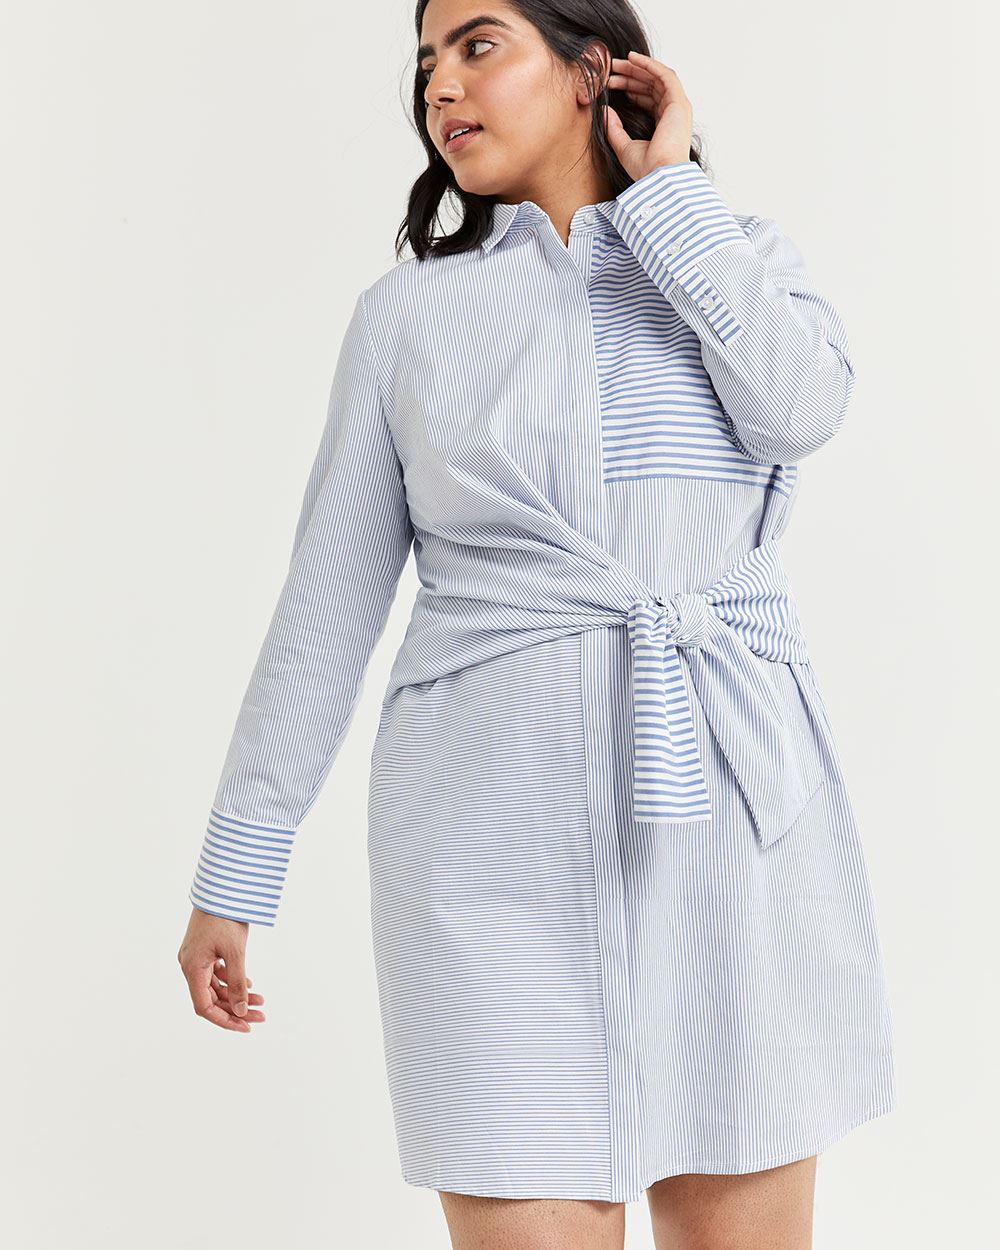 Shift Striped Dress with Front Knot